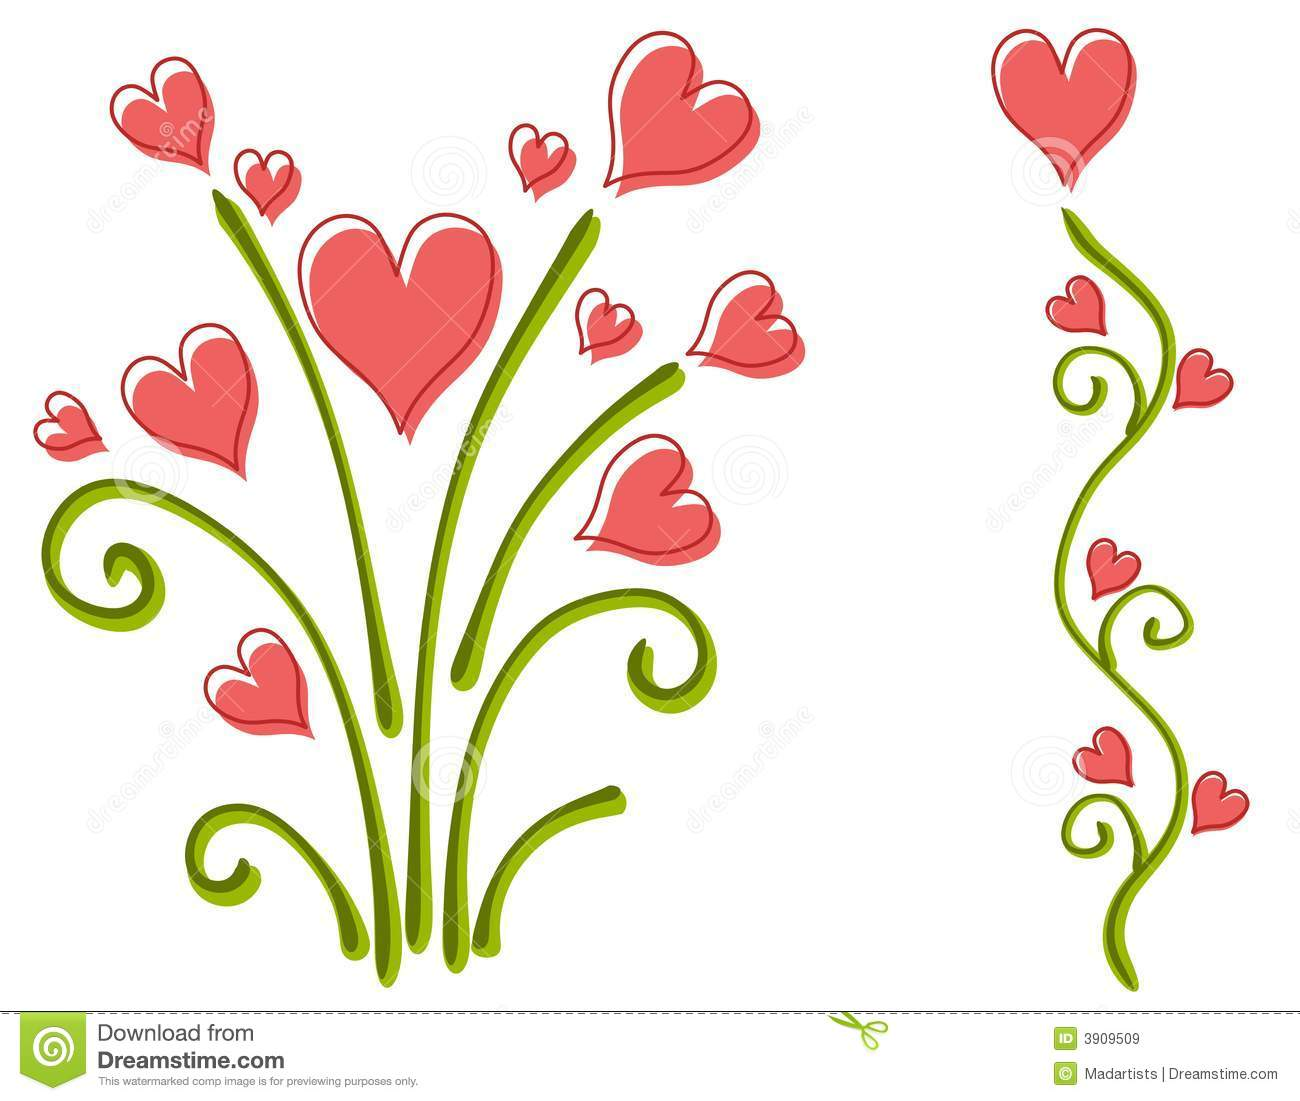 Flower heart clip art.